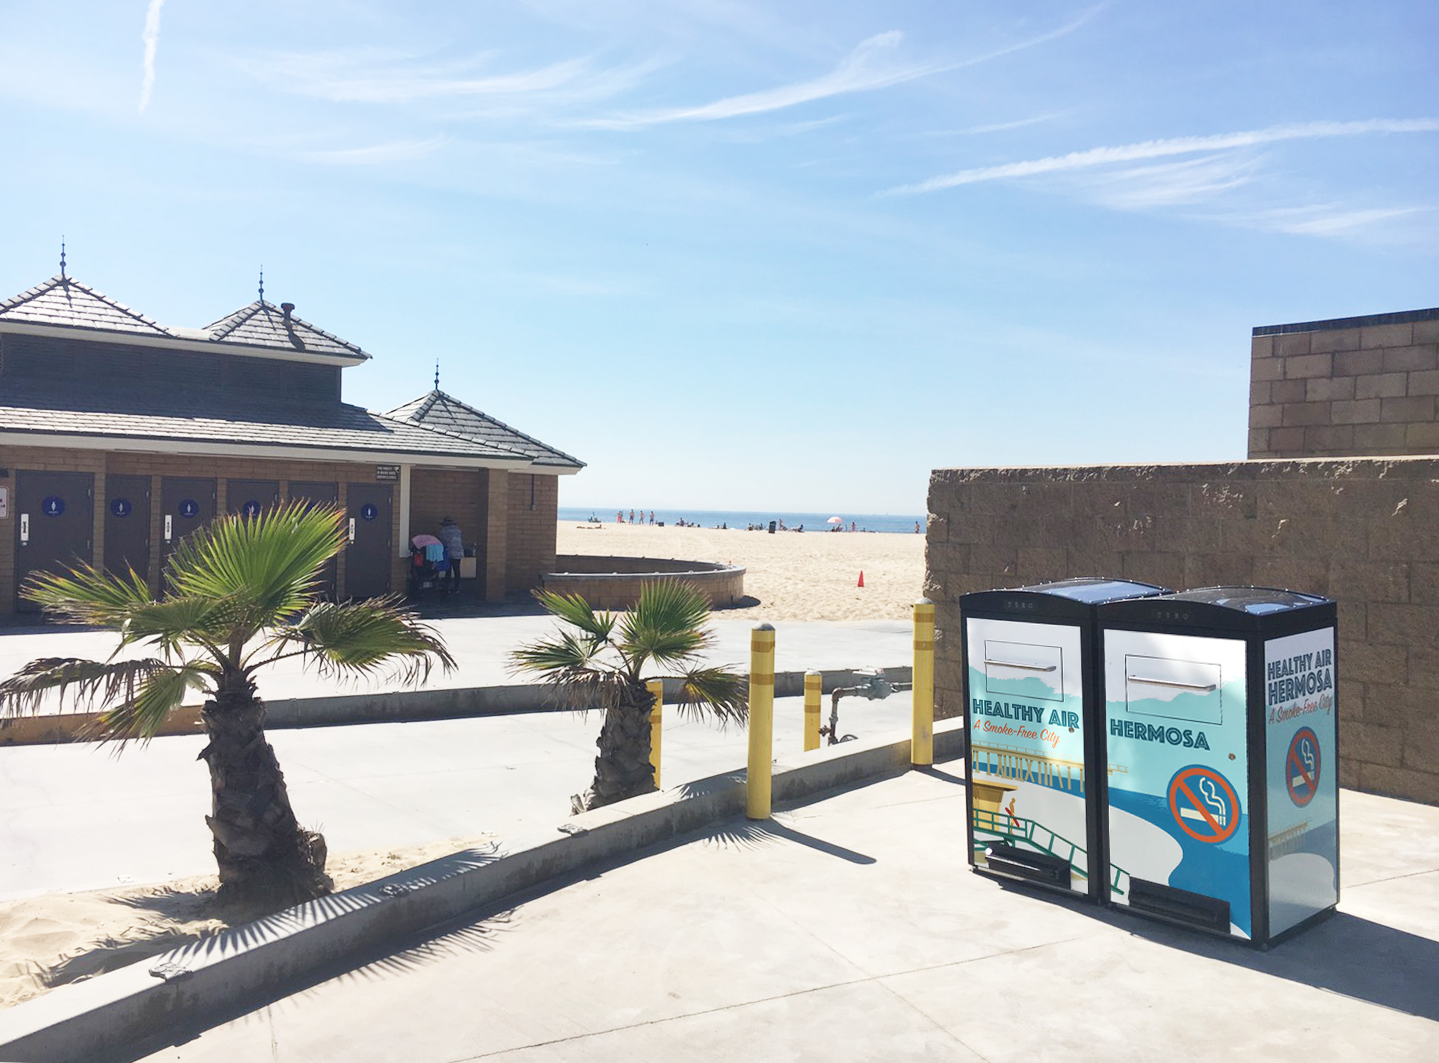 Solar-powered trash compactors at Hermosa Beach, California